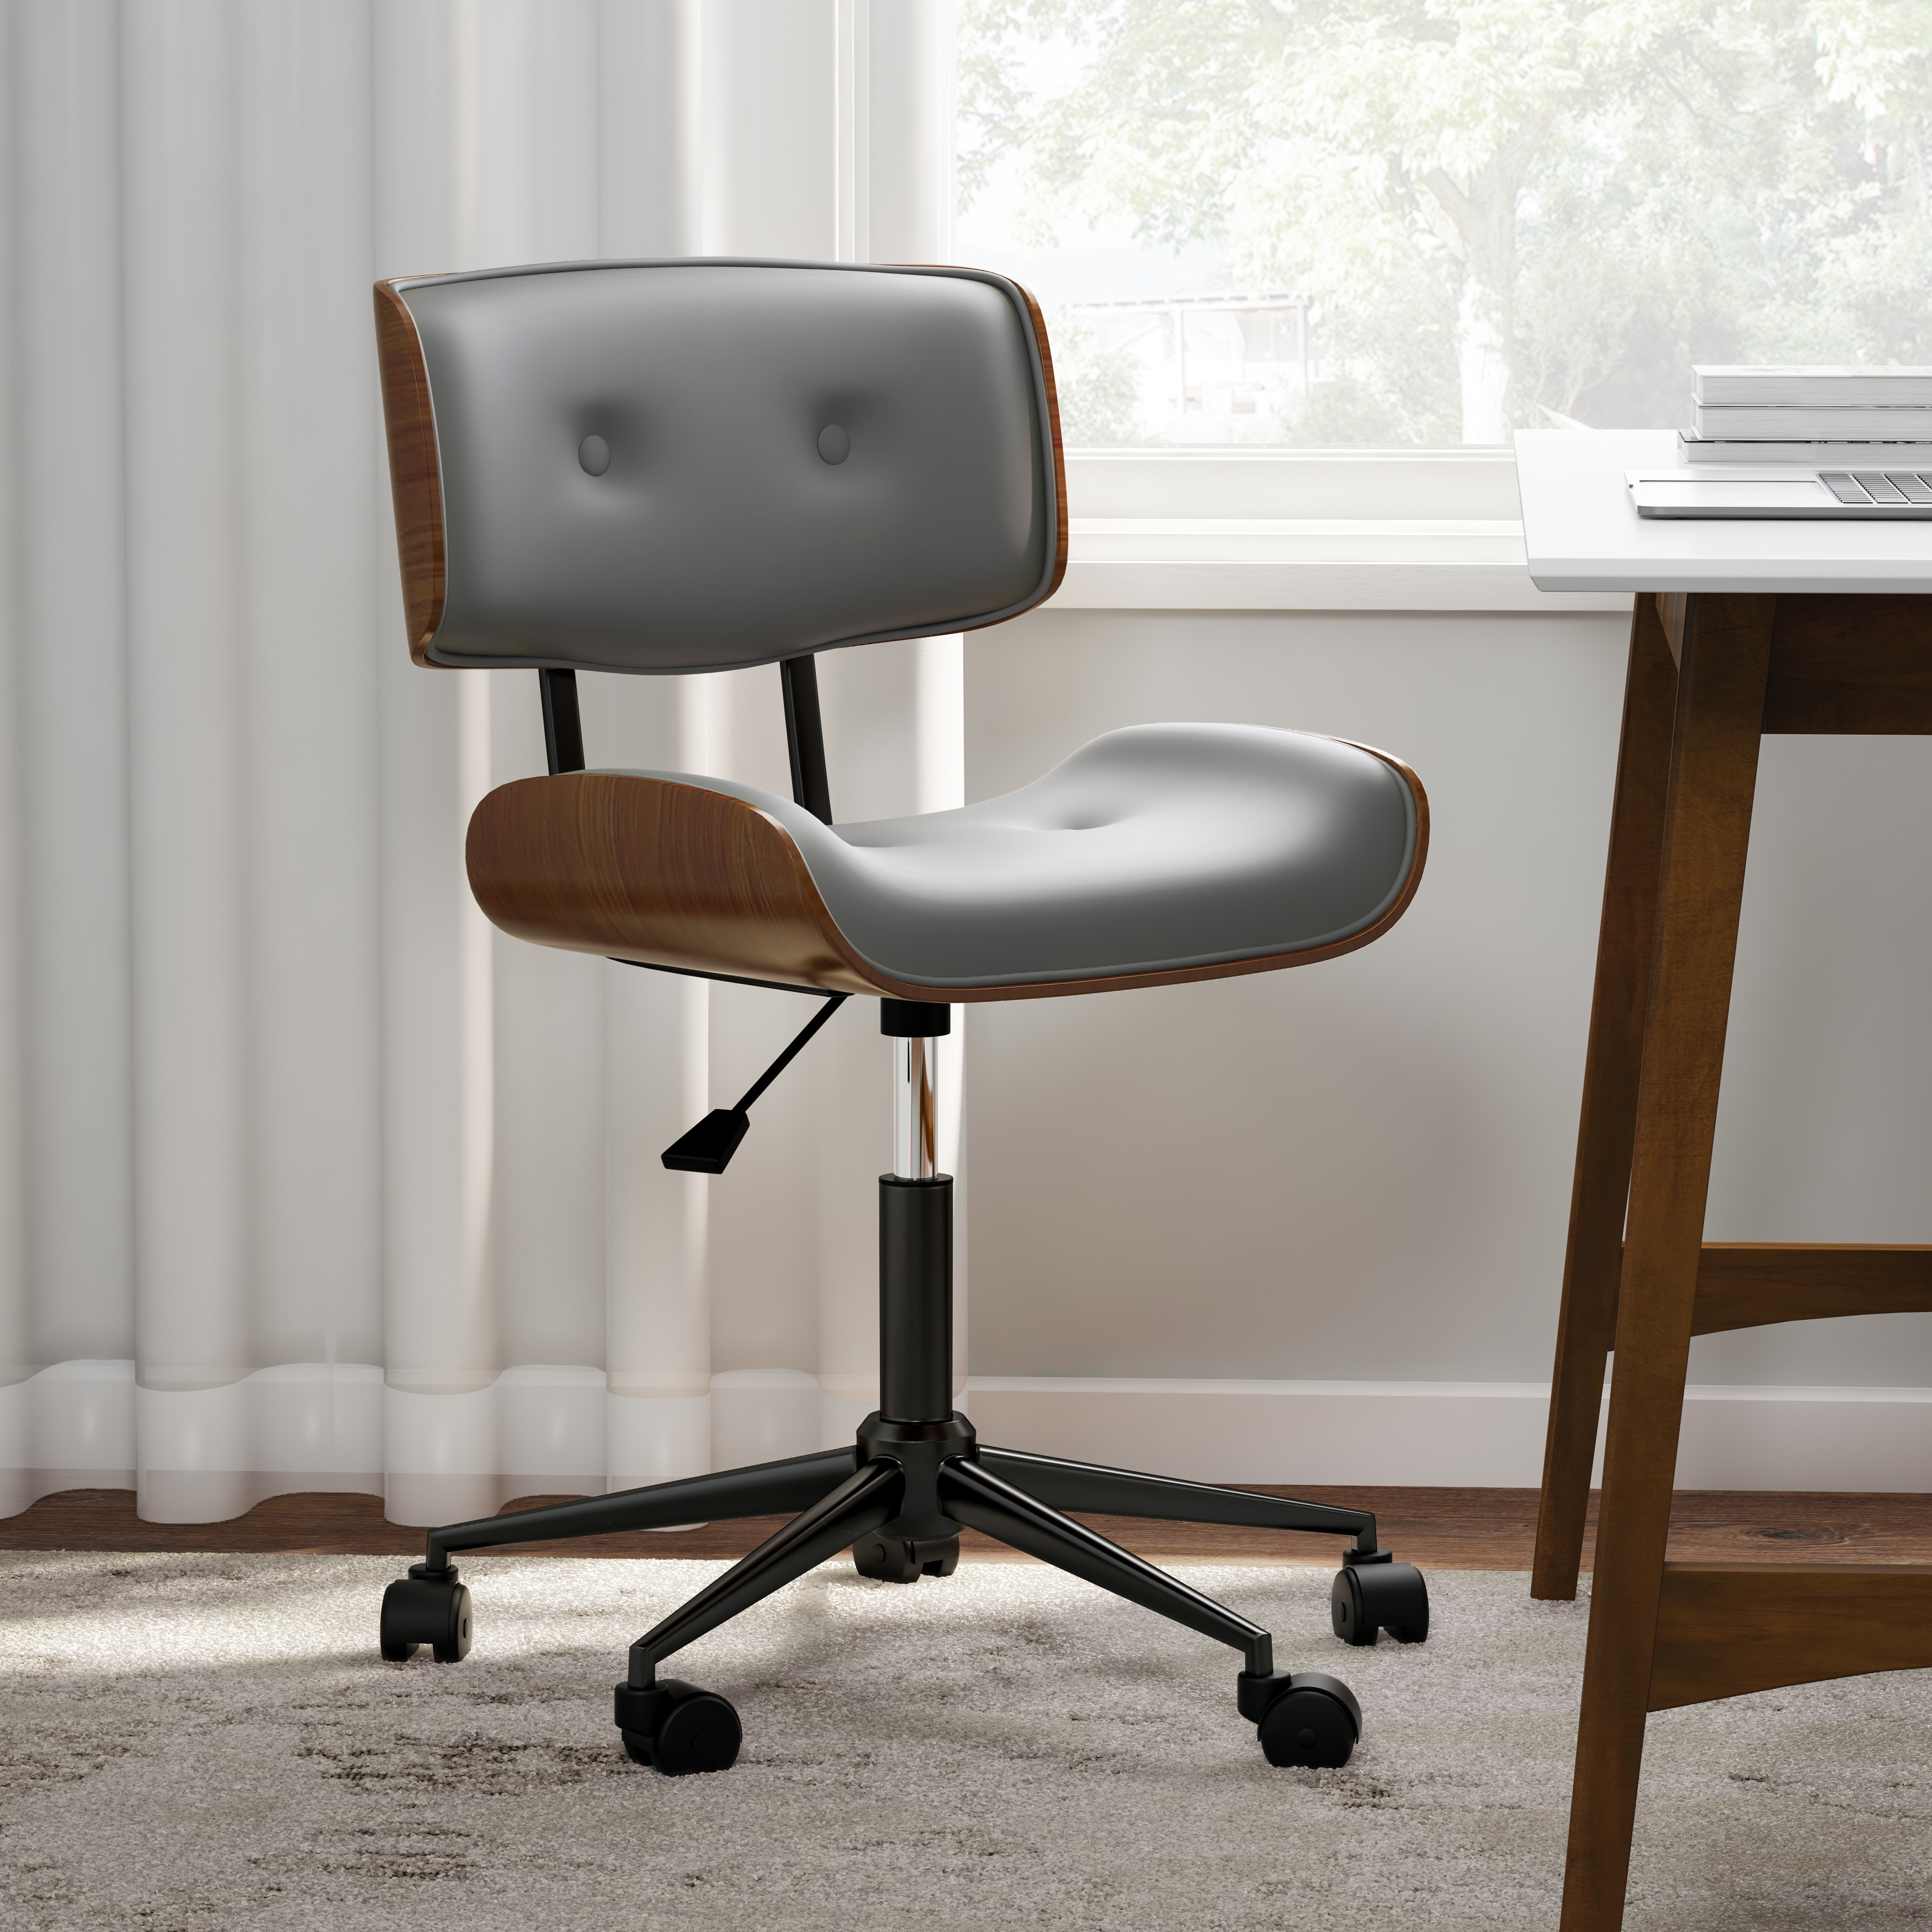 Shop carson carrington leksand simple mid century modern office chair free shipping today overstock com 19529717